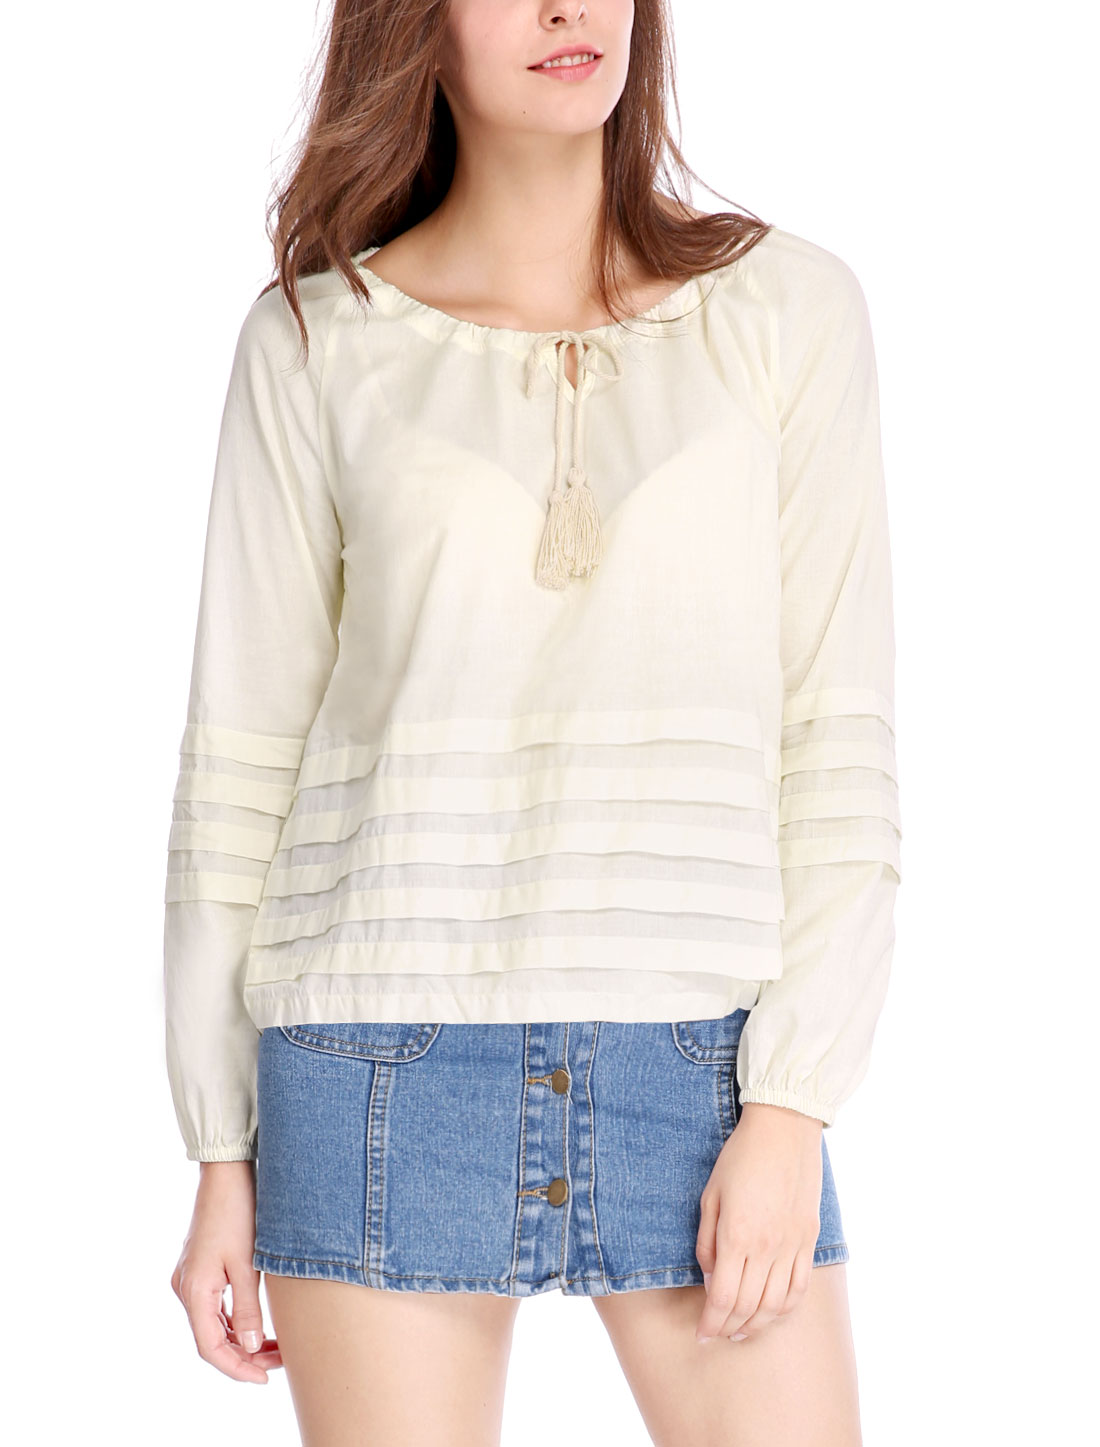 Women Tassel Tie Front Shutter Pleats Long Sleeves Blouse Ivory M